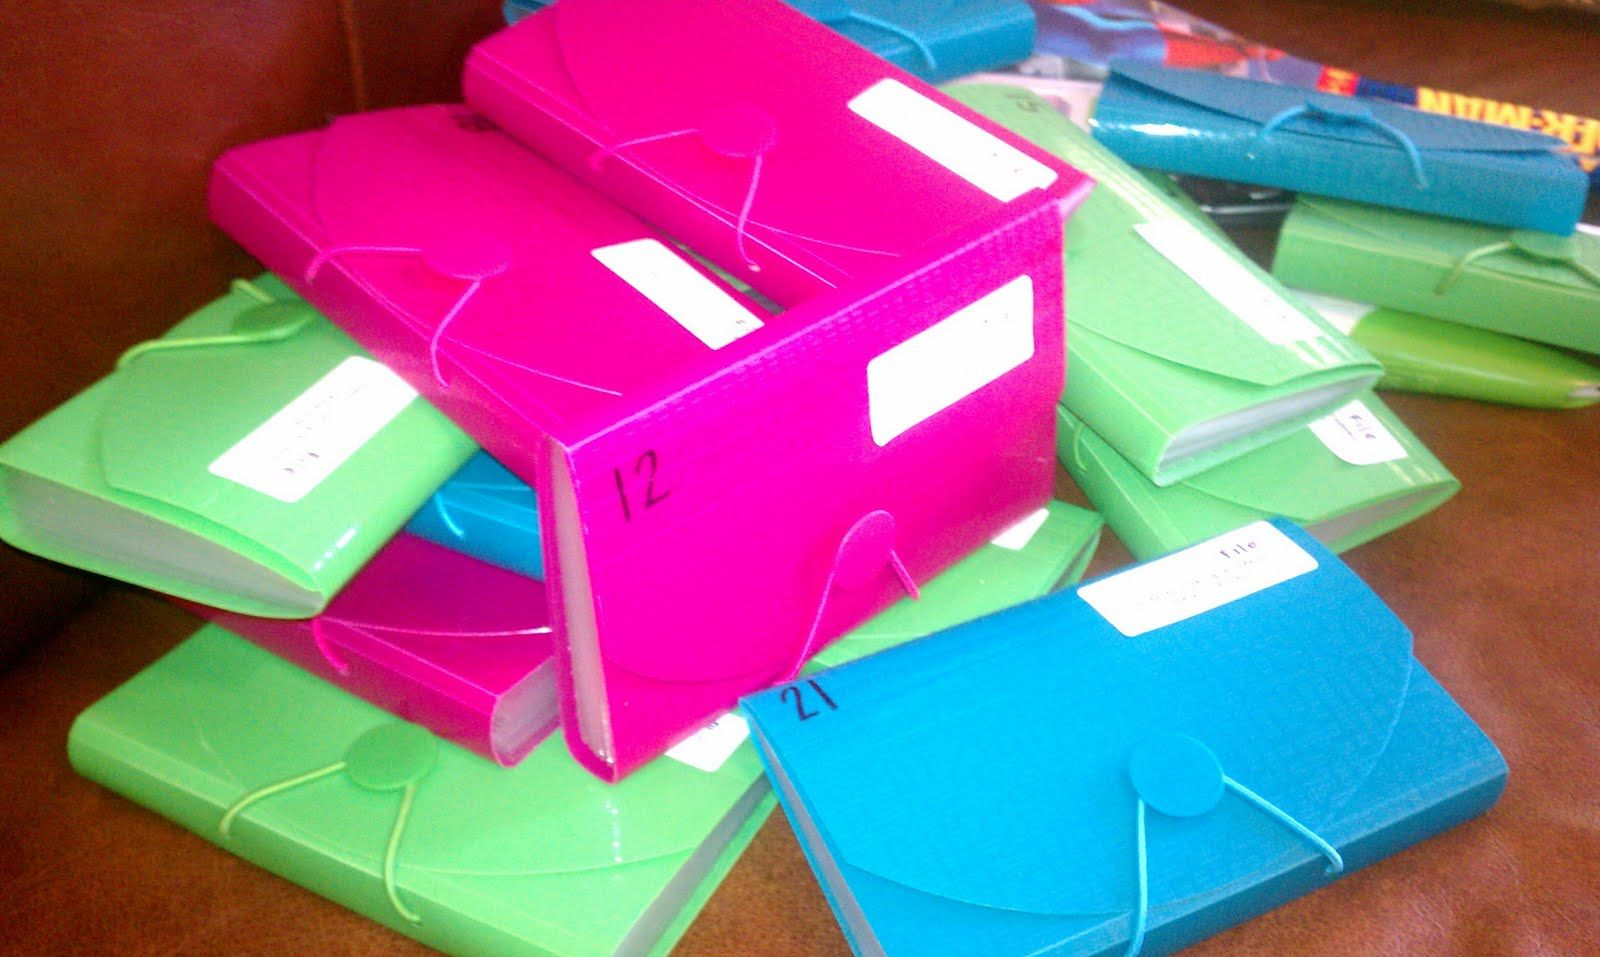 I bought several of these from Target's dollar bin, but after seeing how this teacher organizes with these accordion folders, I am going back for some more!